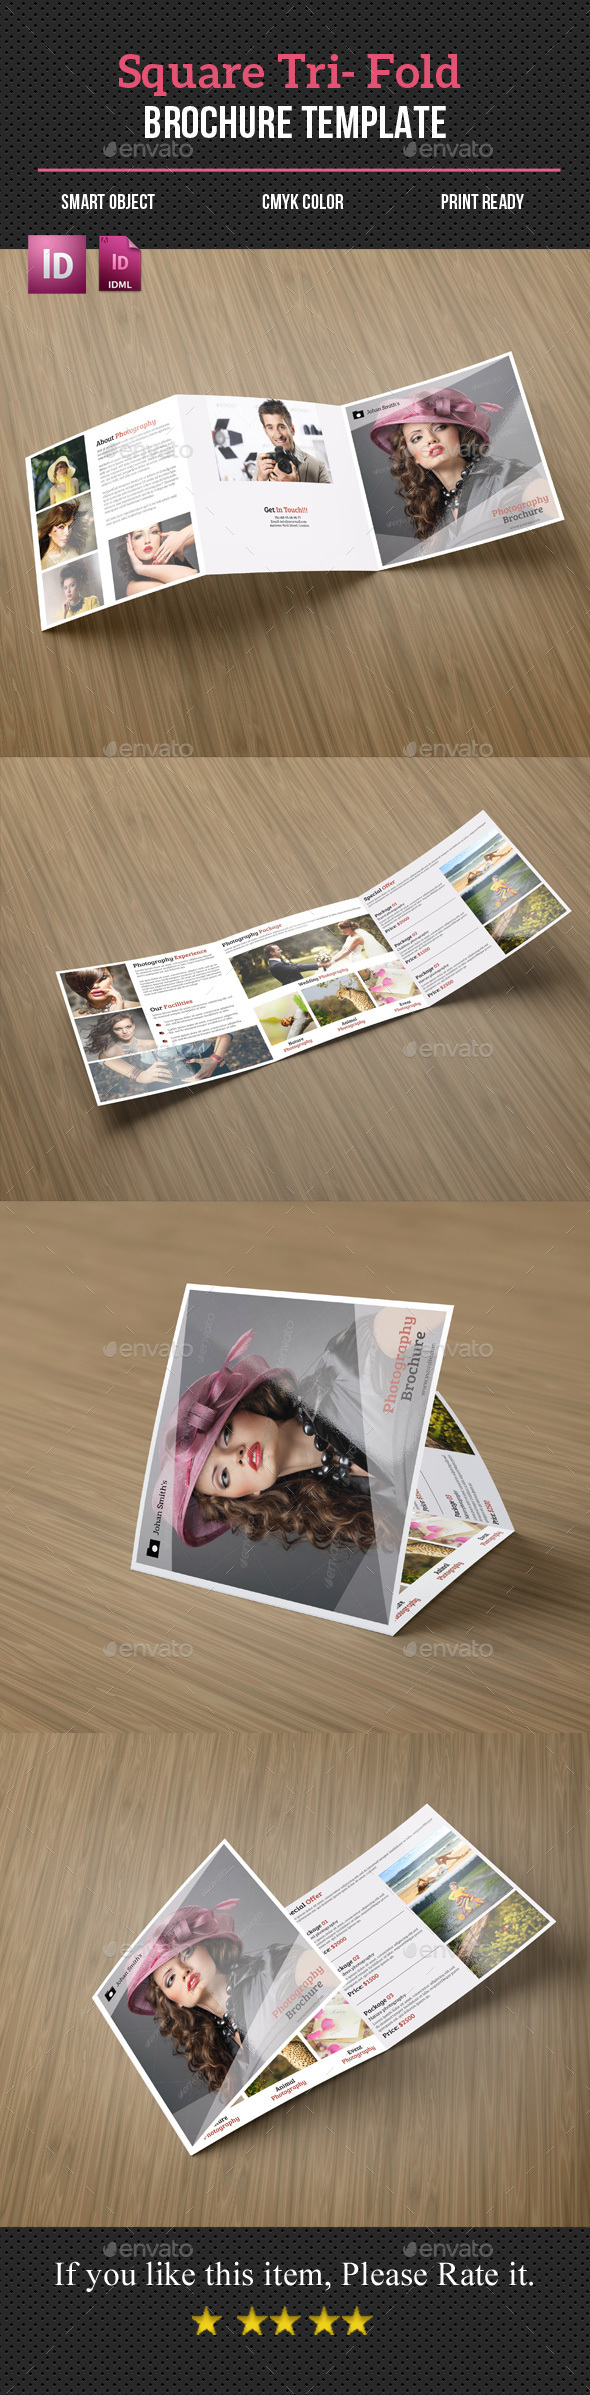 Photography Square Tri- Fold Brochure - Corporate Brochures